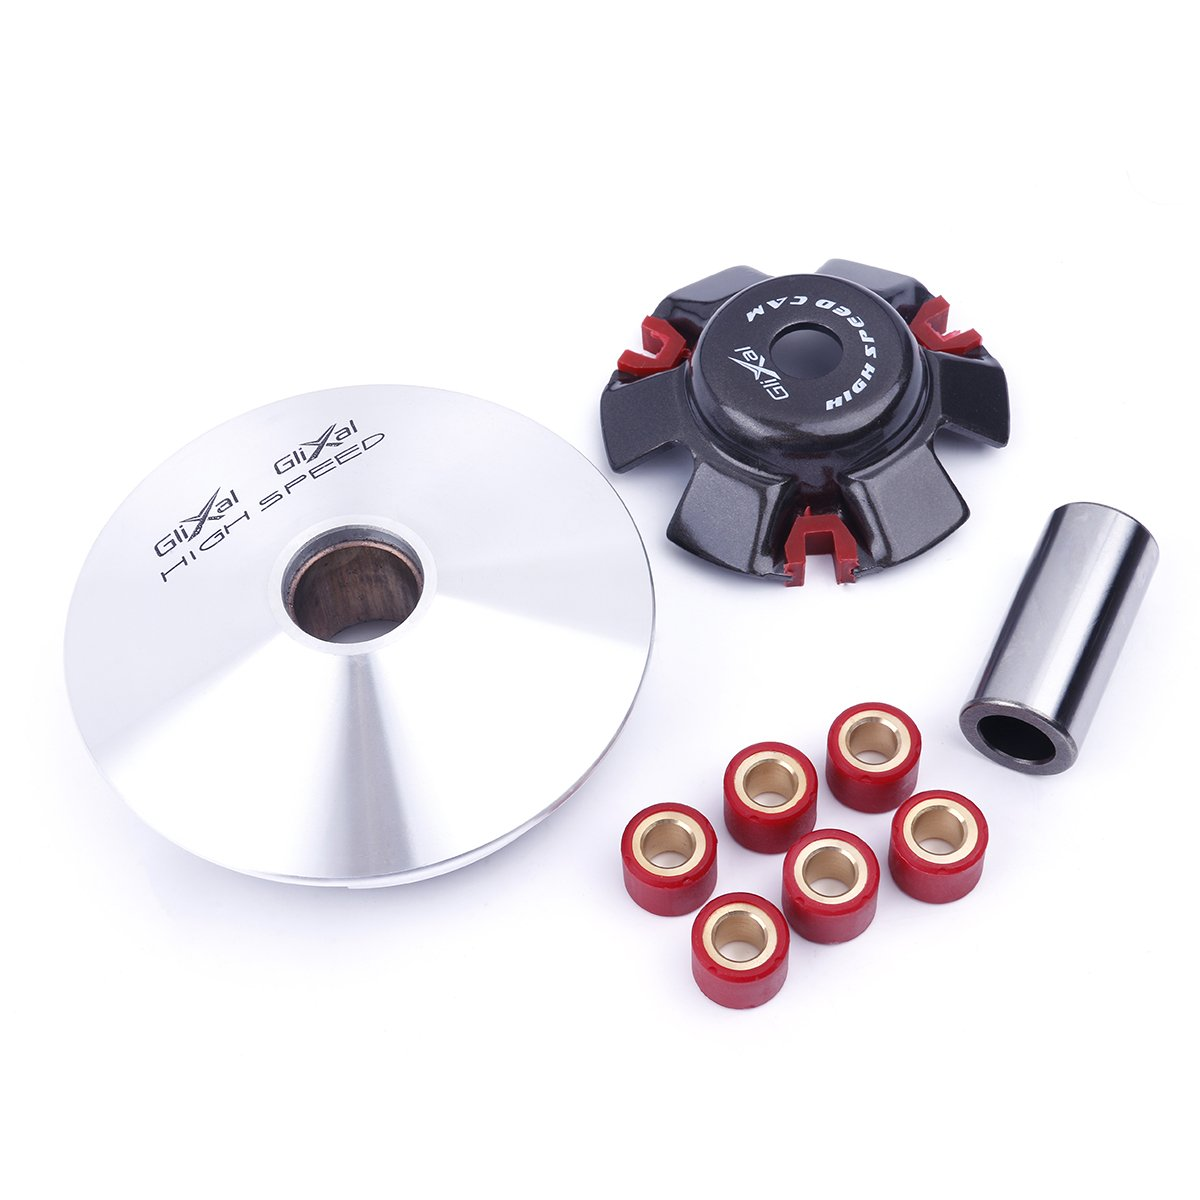 Glixal ATKS-042 GY6 125cc 150cc High Performance Racing Variator Kit with 13g Roller Weights for Chinese 4-Stroke 152QMI 157QMJ Scooter Moped ATV Engine Front Clutch